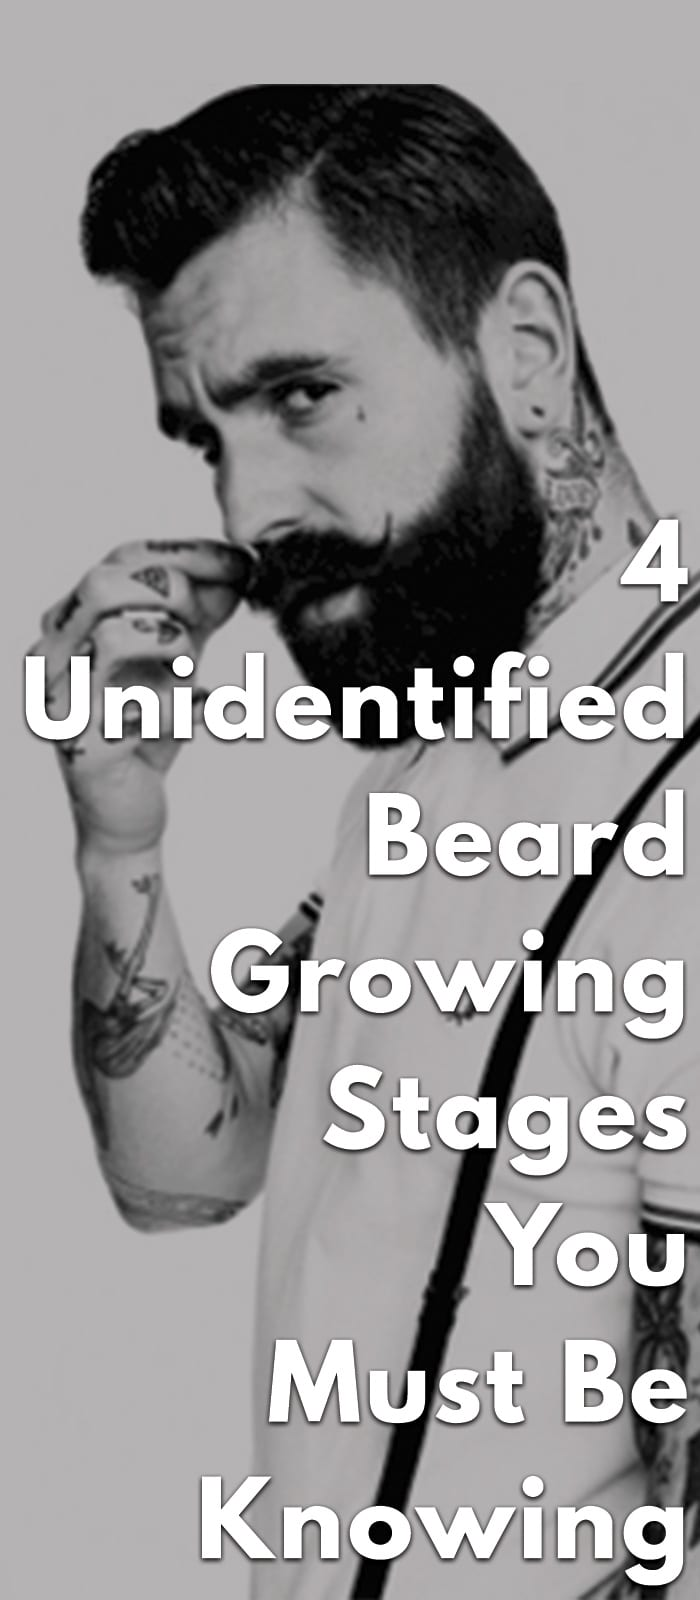 4-Unidentified-Beard-Growing-Stages-You-Must-be-Knowing